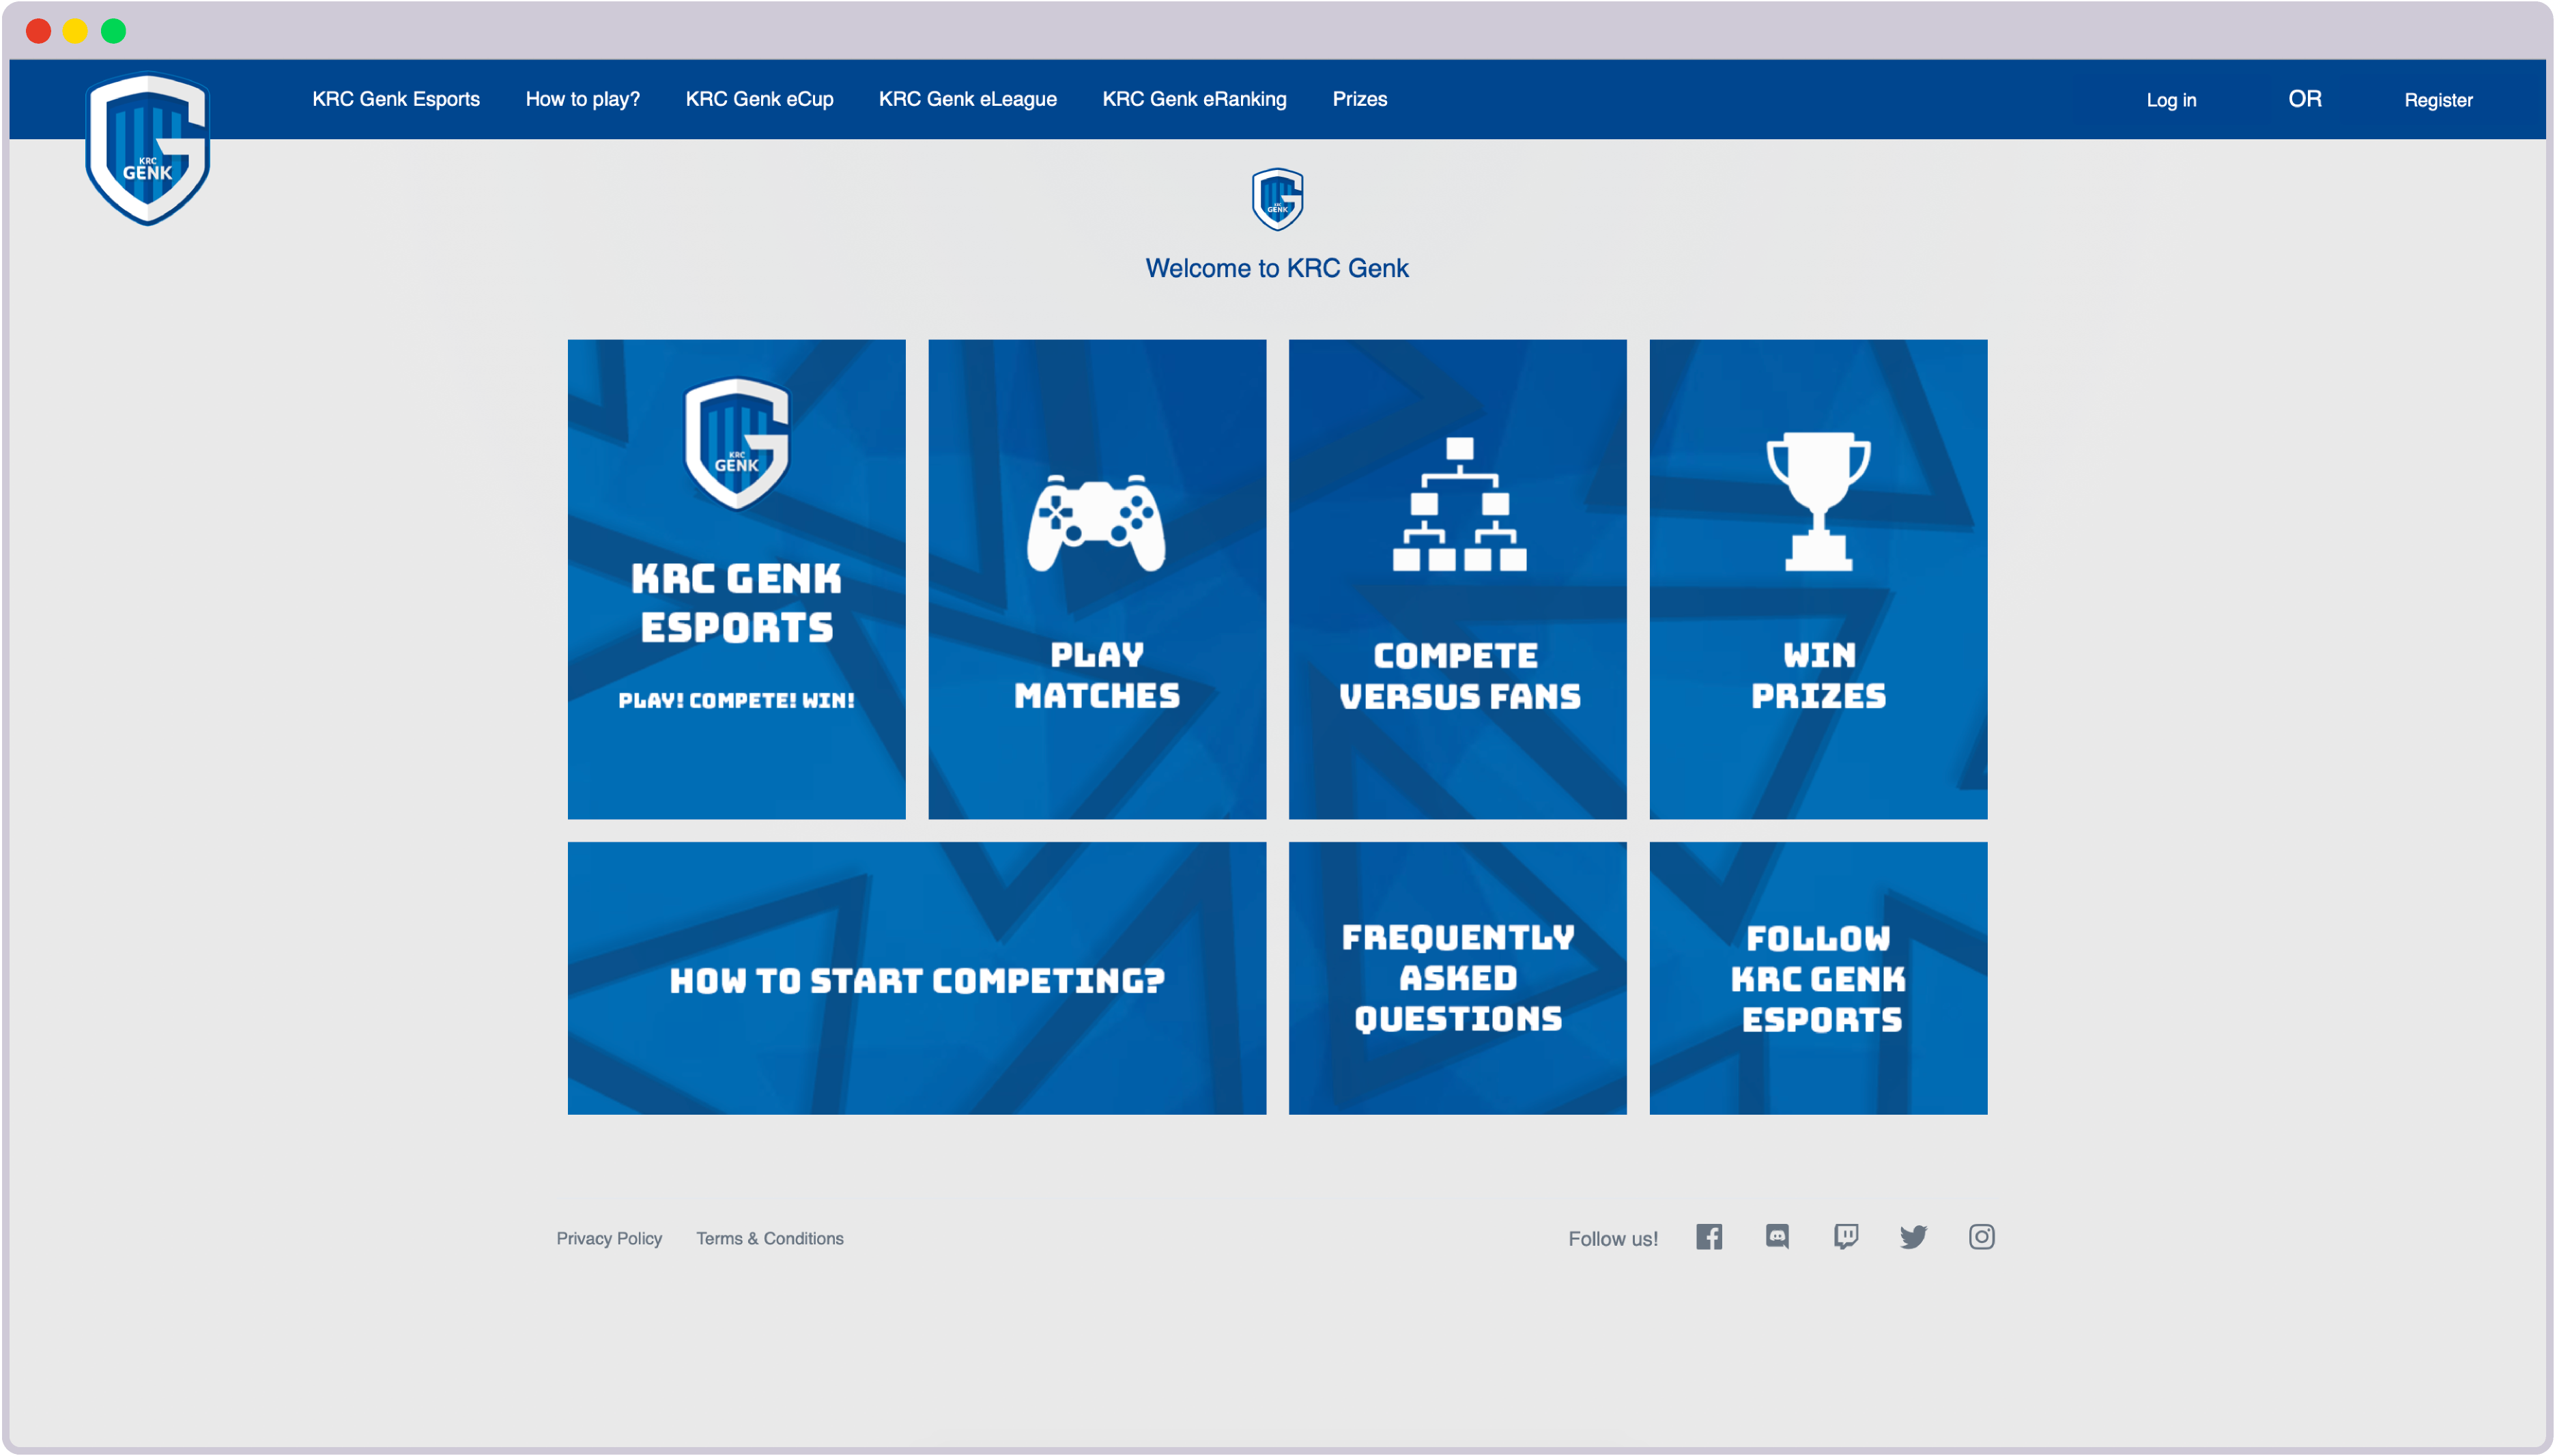 Gaming Tournament platform designed by StriveCloud to help sports clubs like KRC Genk gain esports fan engagement